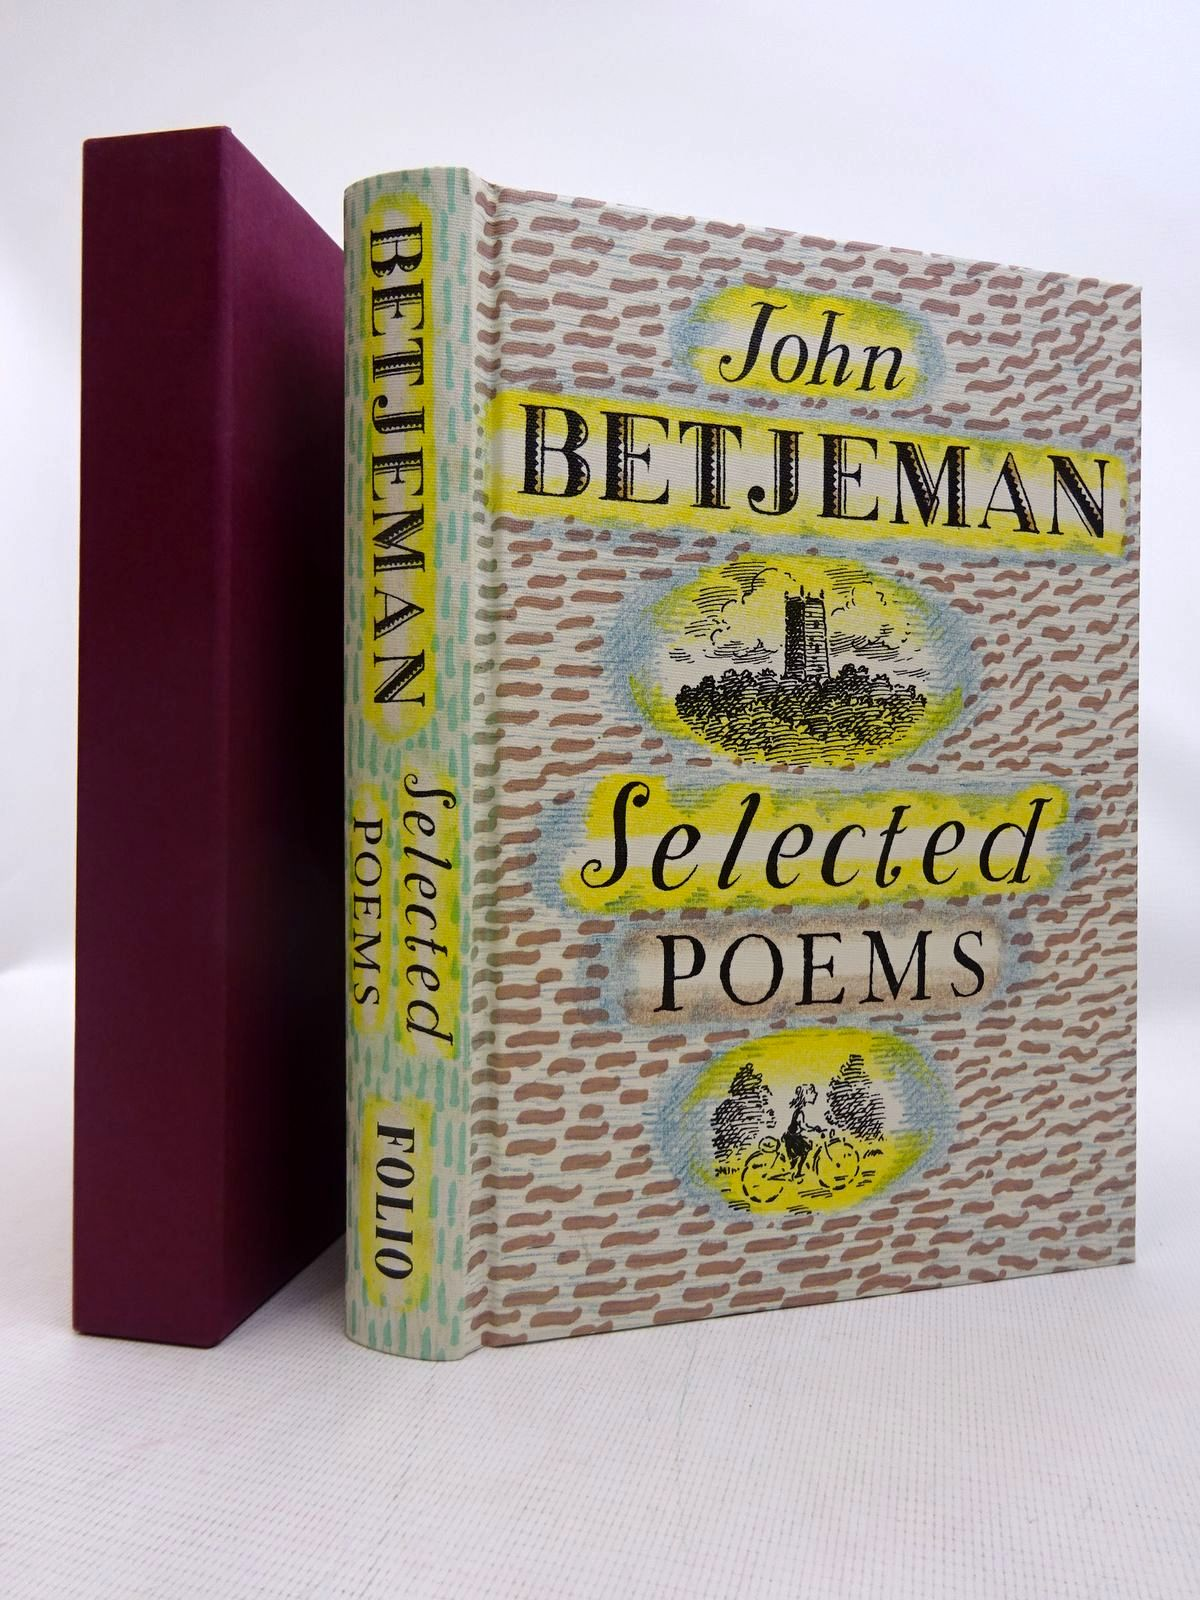 Photo of JOHN BETJEMAN SELECTED POEMS written by Betjeman, John Powers, Alan illustrated by Bailey, Peter published by Folio Society (STOCK CODE: 1816625)  for sale by Stella & Rose's Books